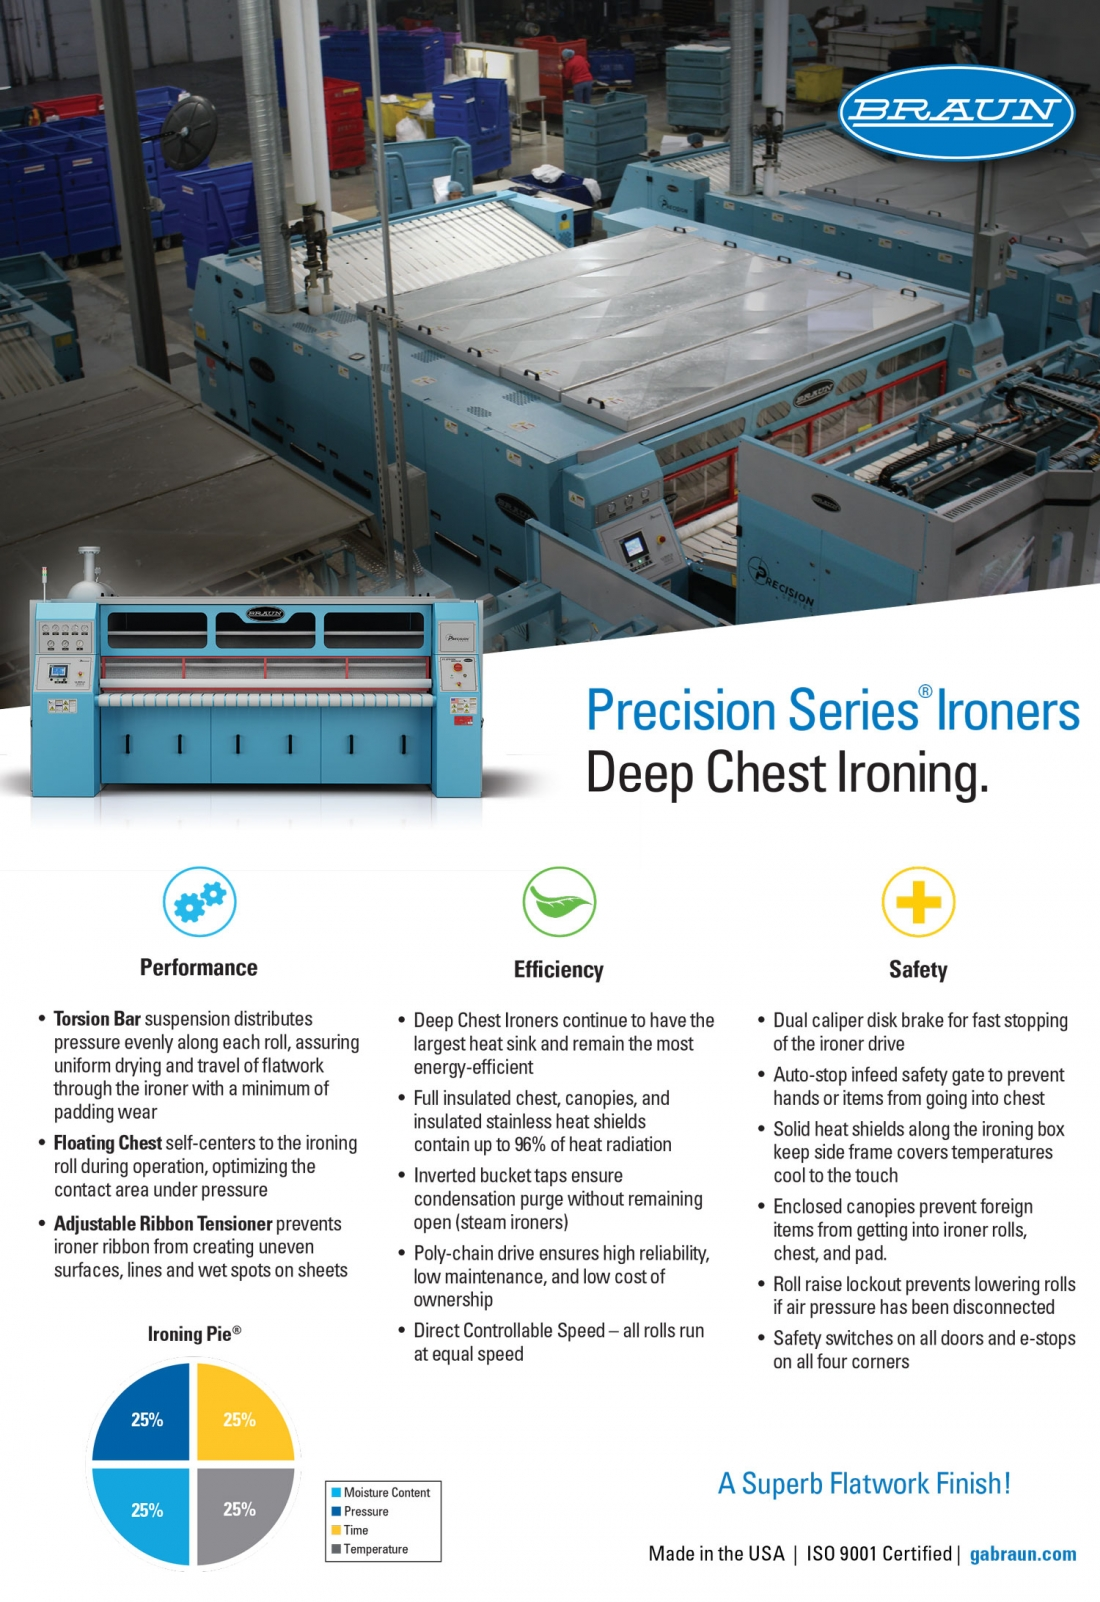 Precision Series Ironers Deep Chest Ironing